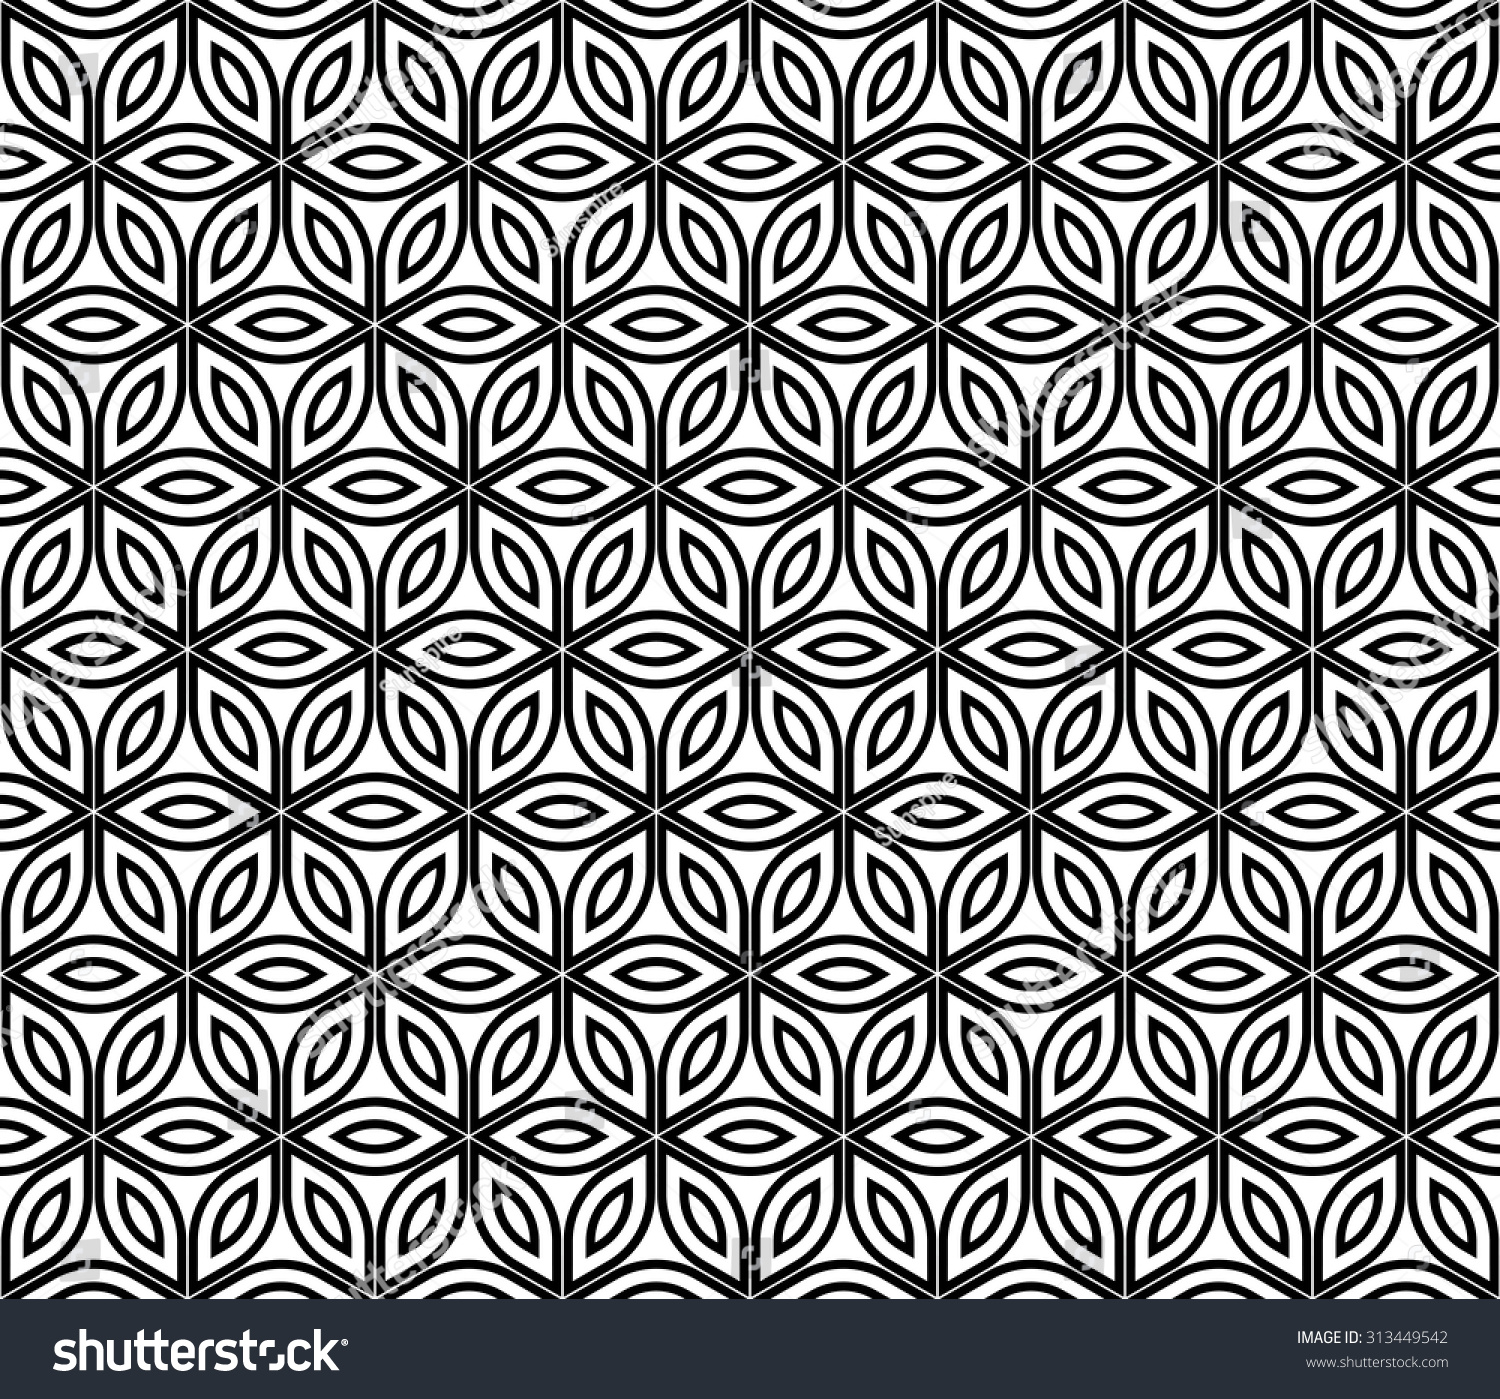 Bed sheets texture seamless - Vector Modern Seamless Pattern Sacred Geometry Black And White Textile Print Stylish Background